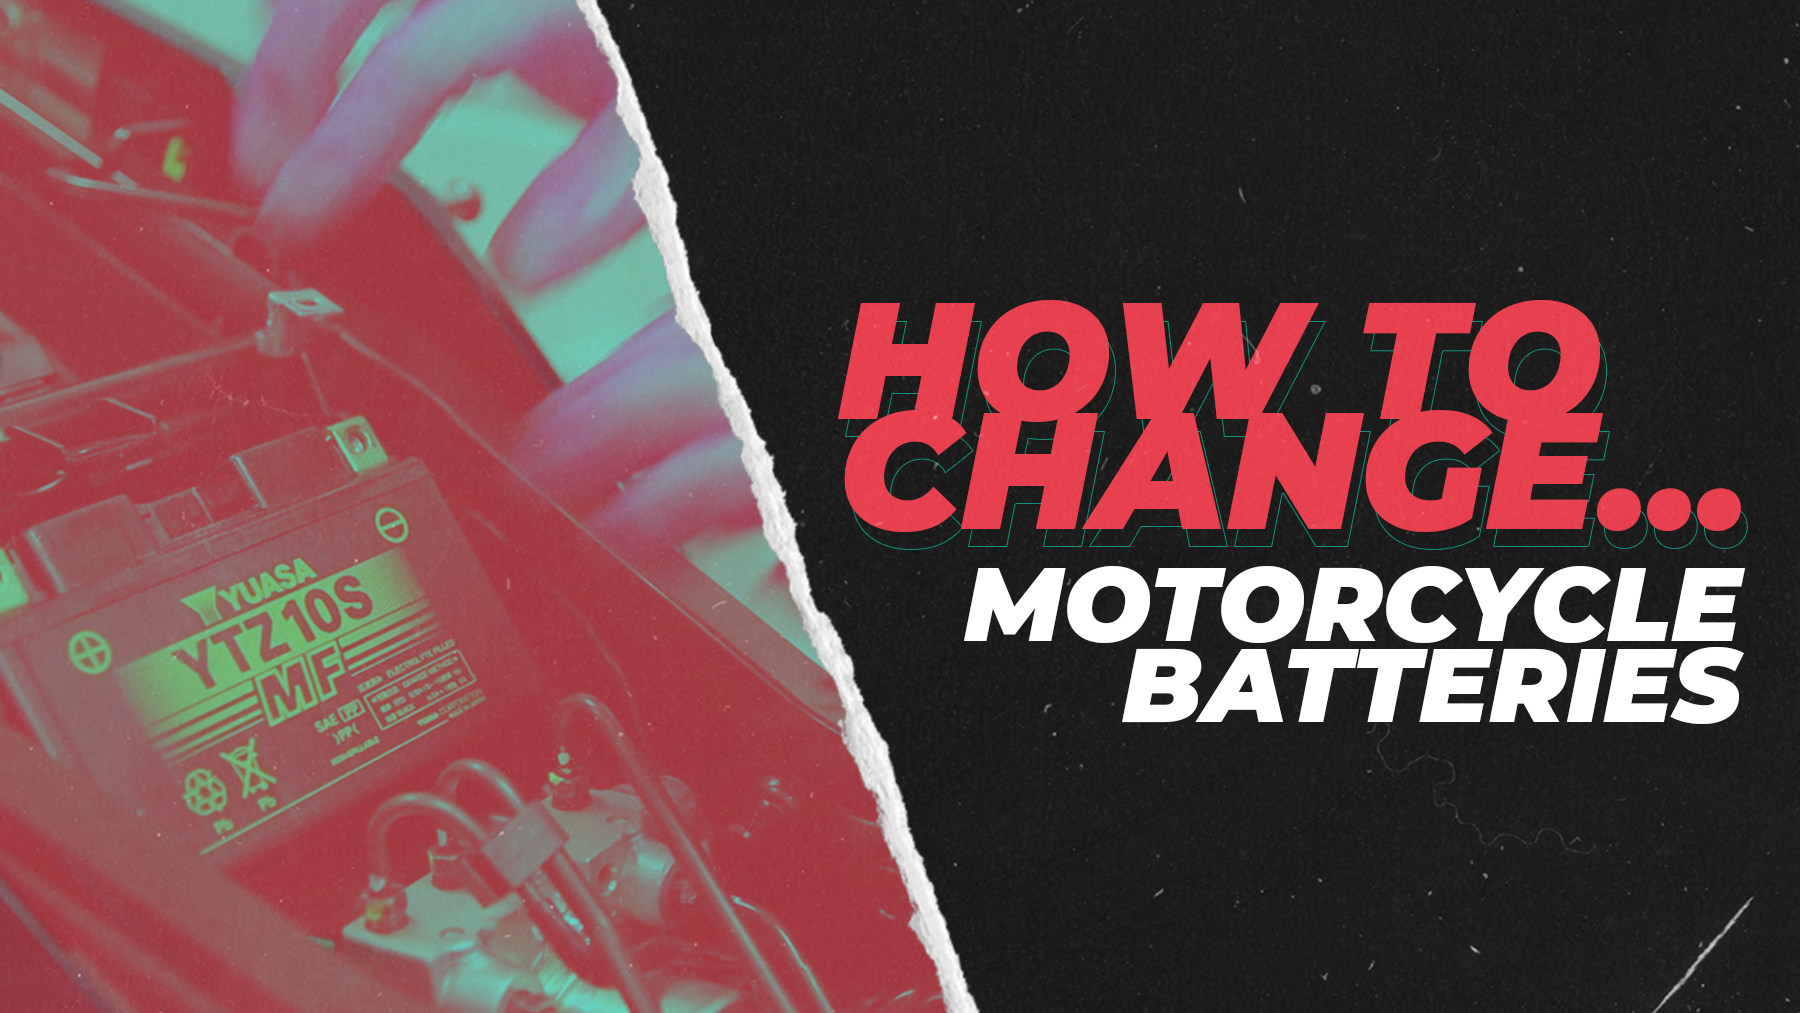 How to Change Your Motorcycle Battery